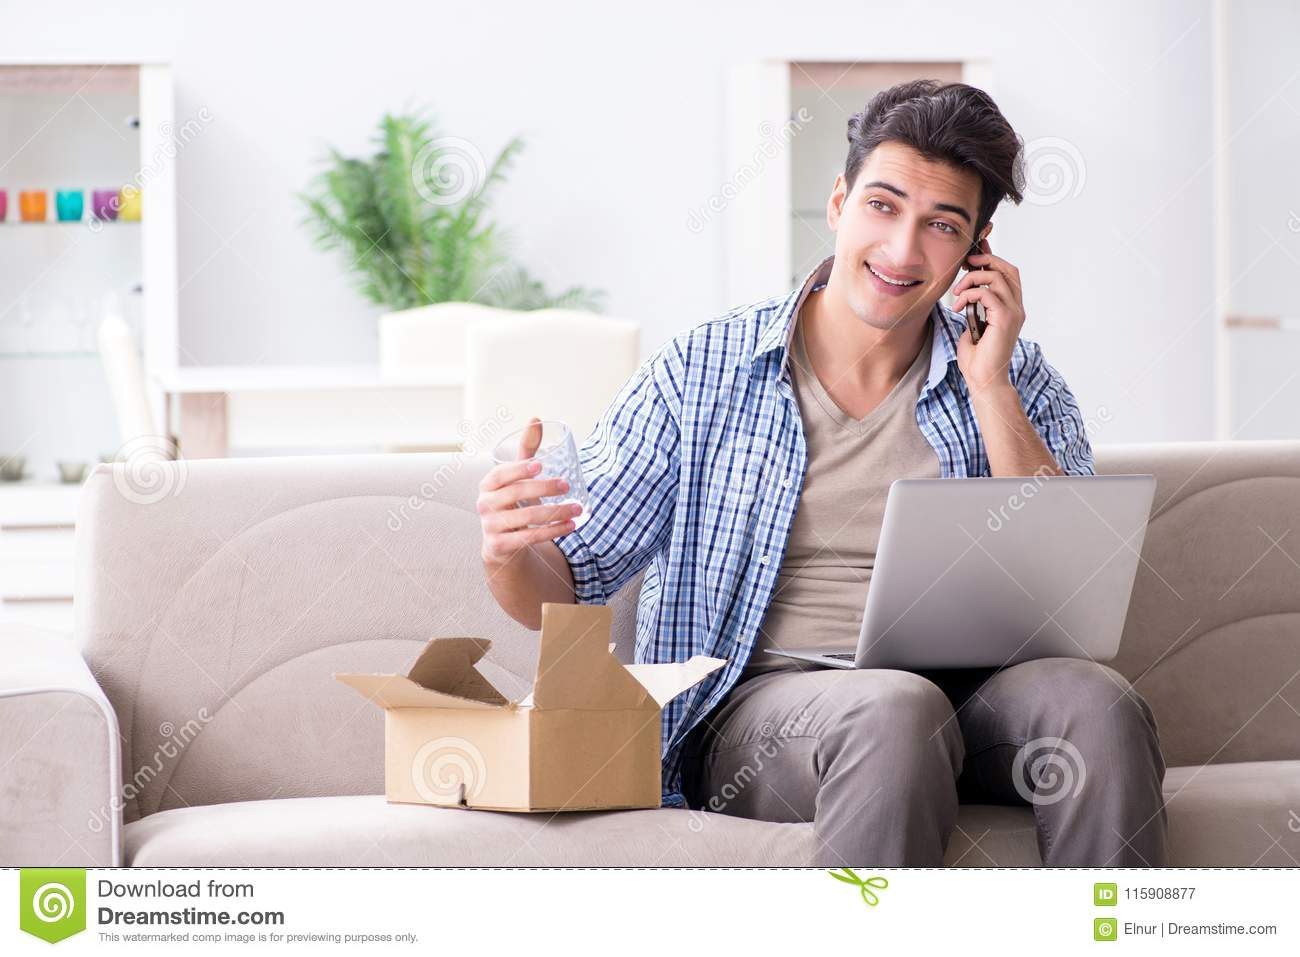 The man receiving parcel at home